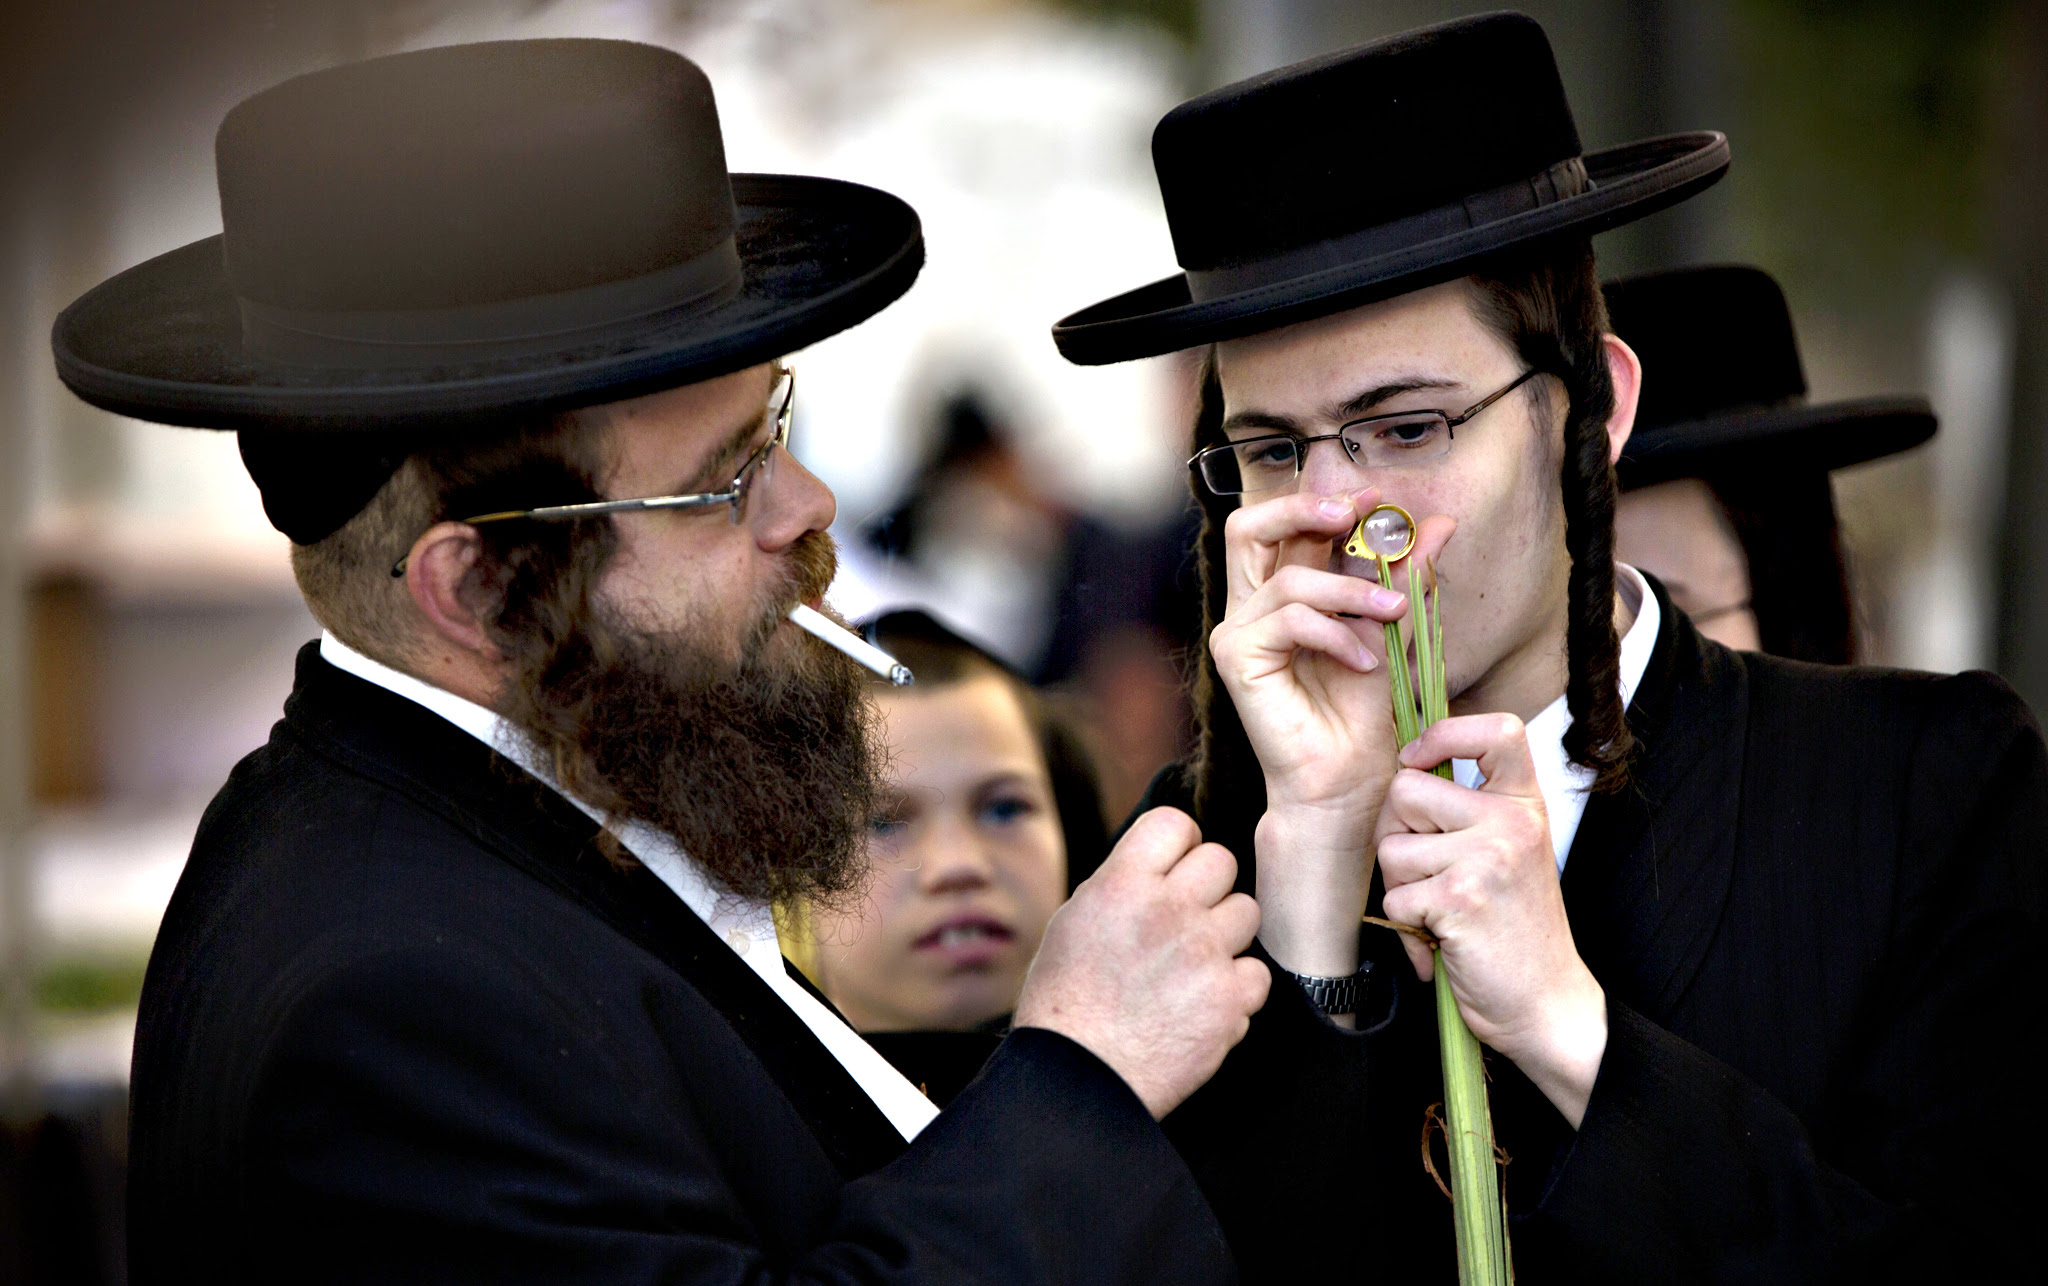 Ultra-Orthodox Jews check palm fronds to determine if they are ritually acceptable as one of the four items used as a symbol on the Jewish holiday of Sukkot in Jerusalem, Thursday, Sept. 24, 2015. The holiday commemorates the Israelites 40 years of wandering in the desert and a decorated hut is erected outside religious households as a sign of temporary shelter. The weeklong holiday begins on Sunday